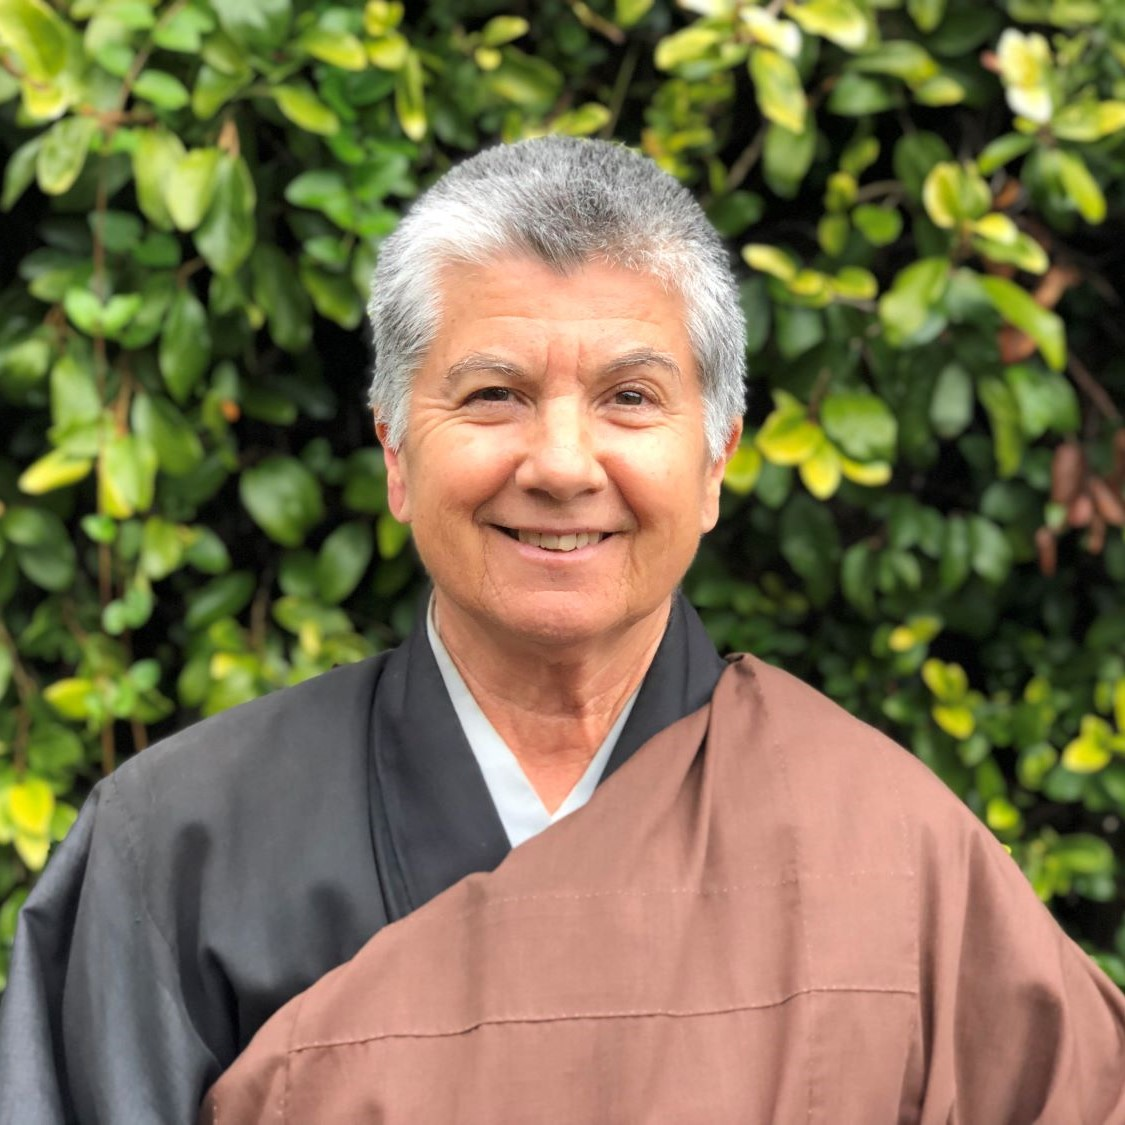 Cathy Toldi - Cathy has been practicing Zen at Warm Jewel Temple since 1987. She received the precepts and priest ordination from her root teacher, Katherine Thanas, and dharma transmission from Patrick Teverbaugh. Cathy's focus is integrating Zen into the relational domain.